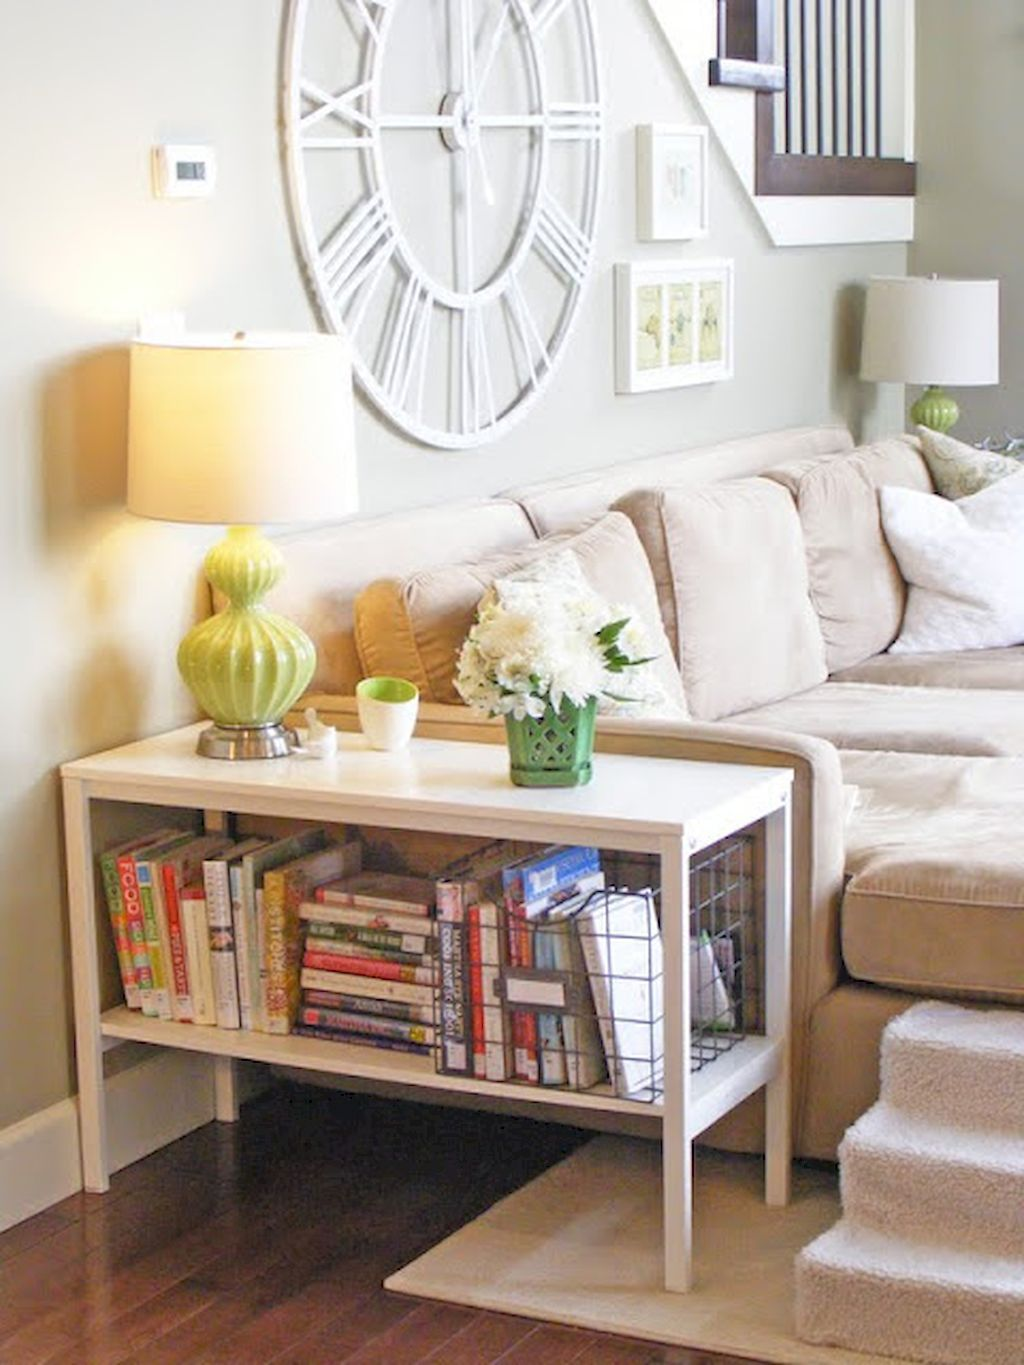 80 Incredibly Creative IKEA Hacks Living Room Furniture | Ikea hack ...